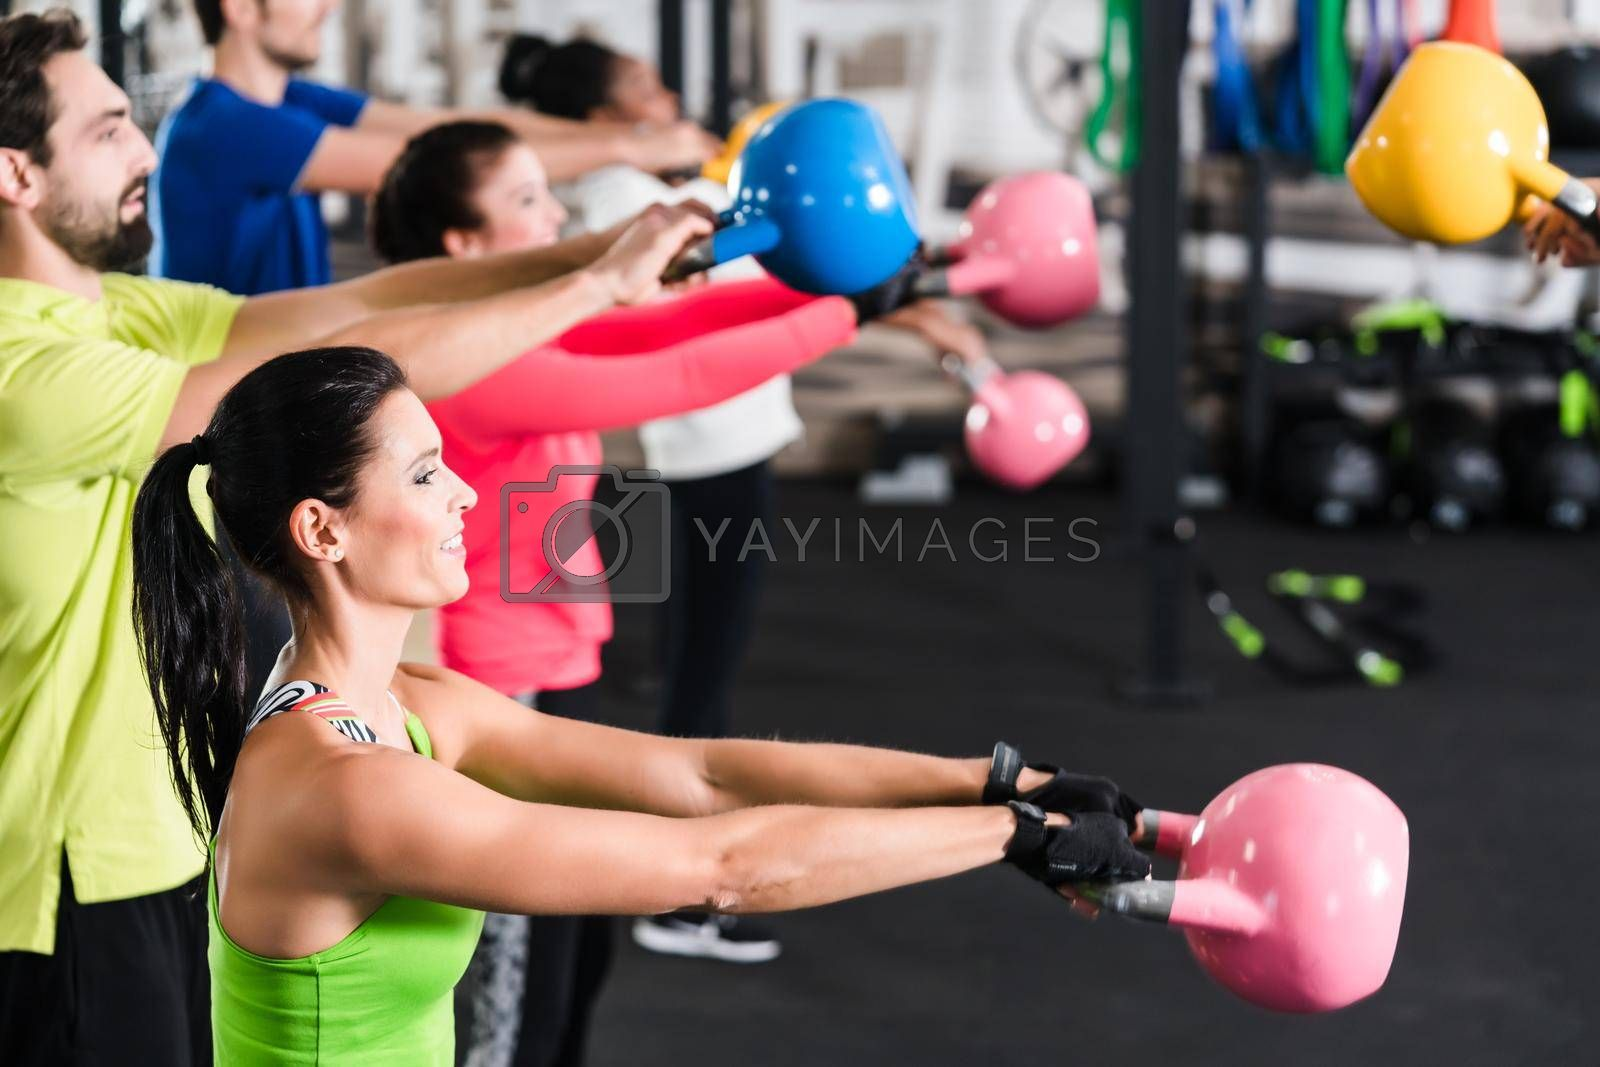 Royalty free image of Functional fitness workout in sport gym by Kzenon